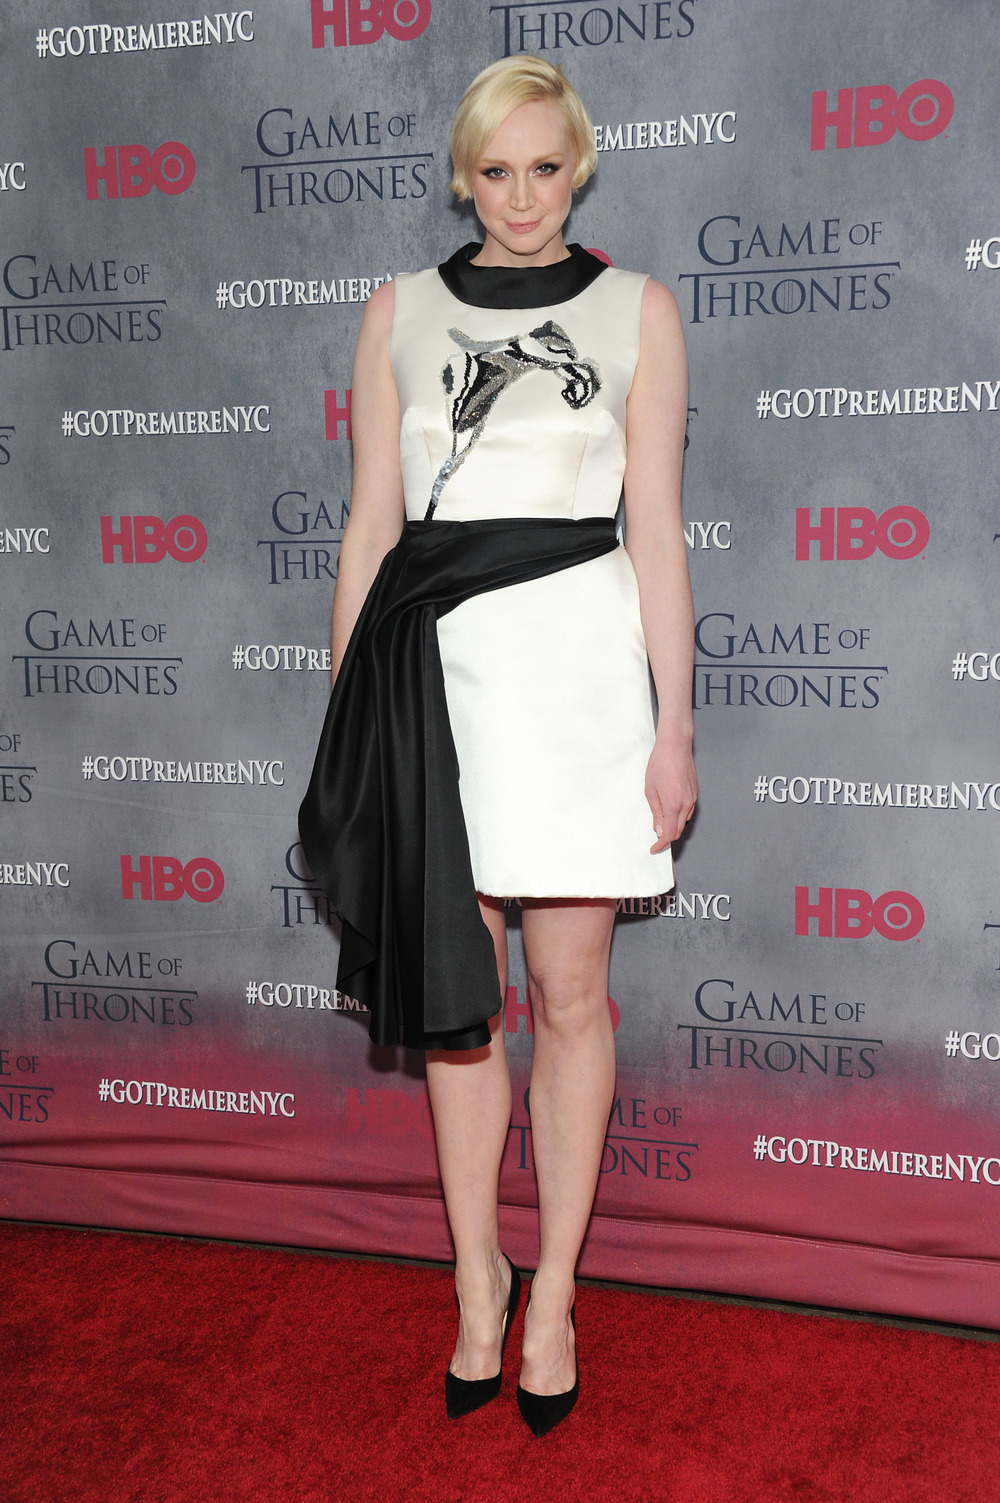 Game of Thrones Star Says Downton Abbey Cast Would Lose in a Fight